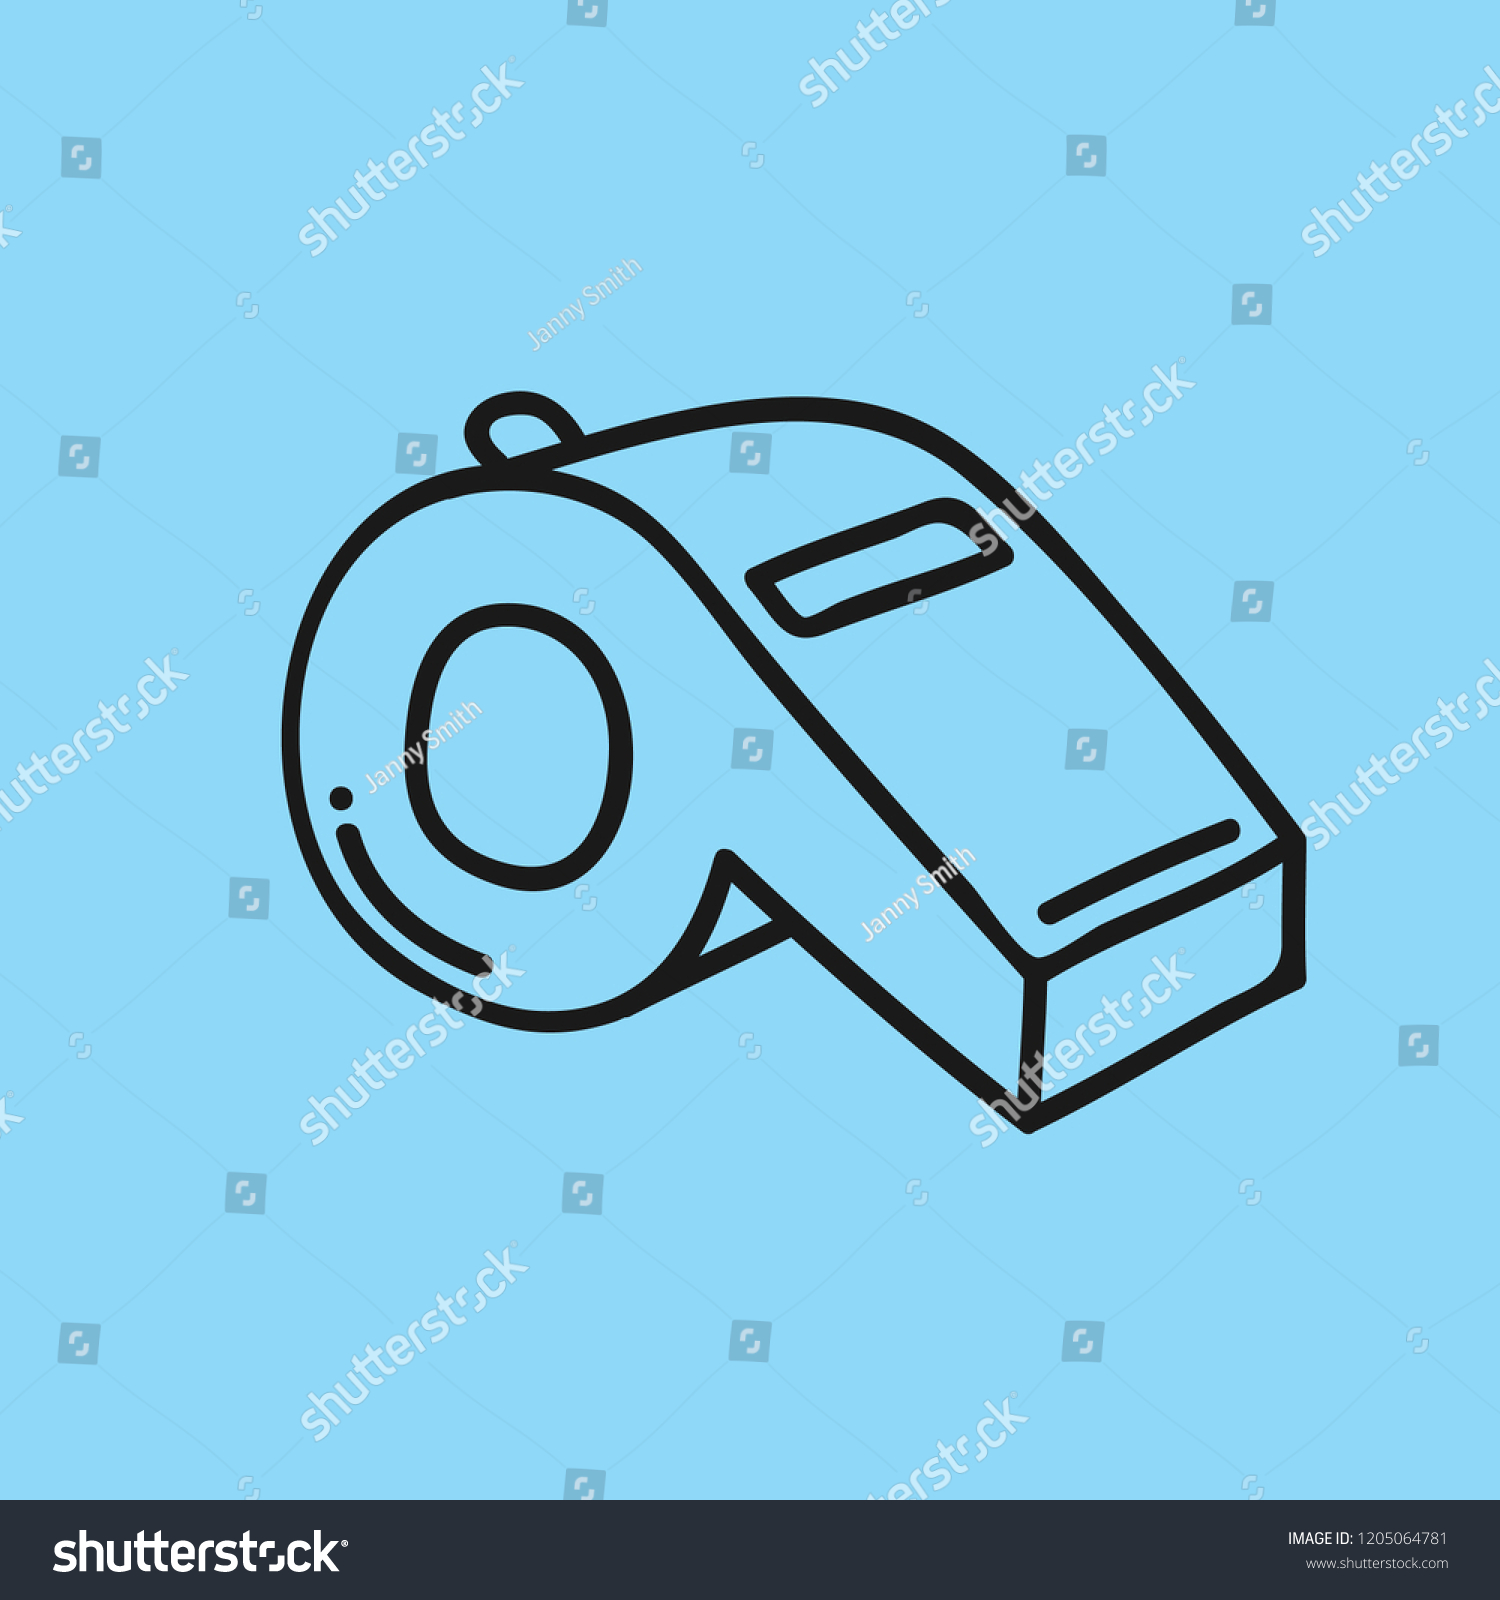 how to wolf whistle diagram er for web application icon vector stock royalty free 1205064781